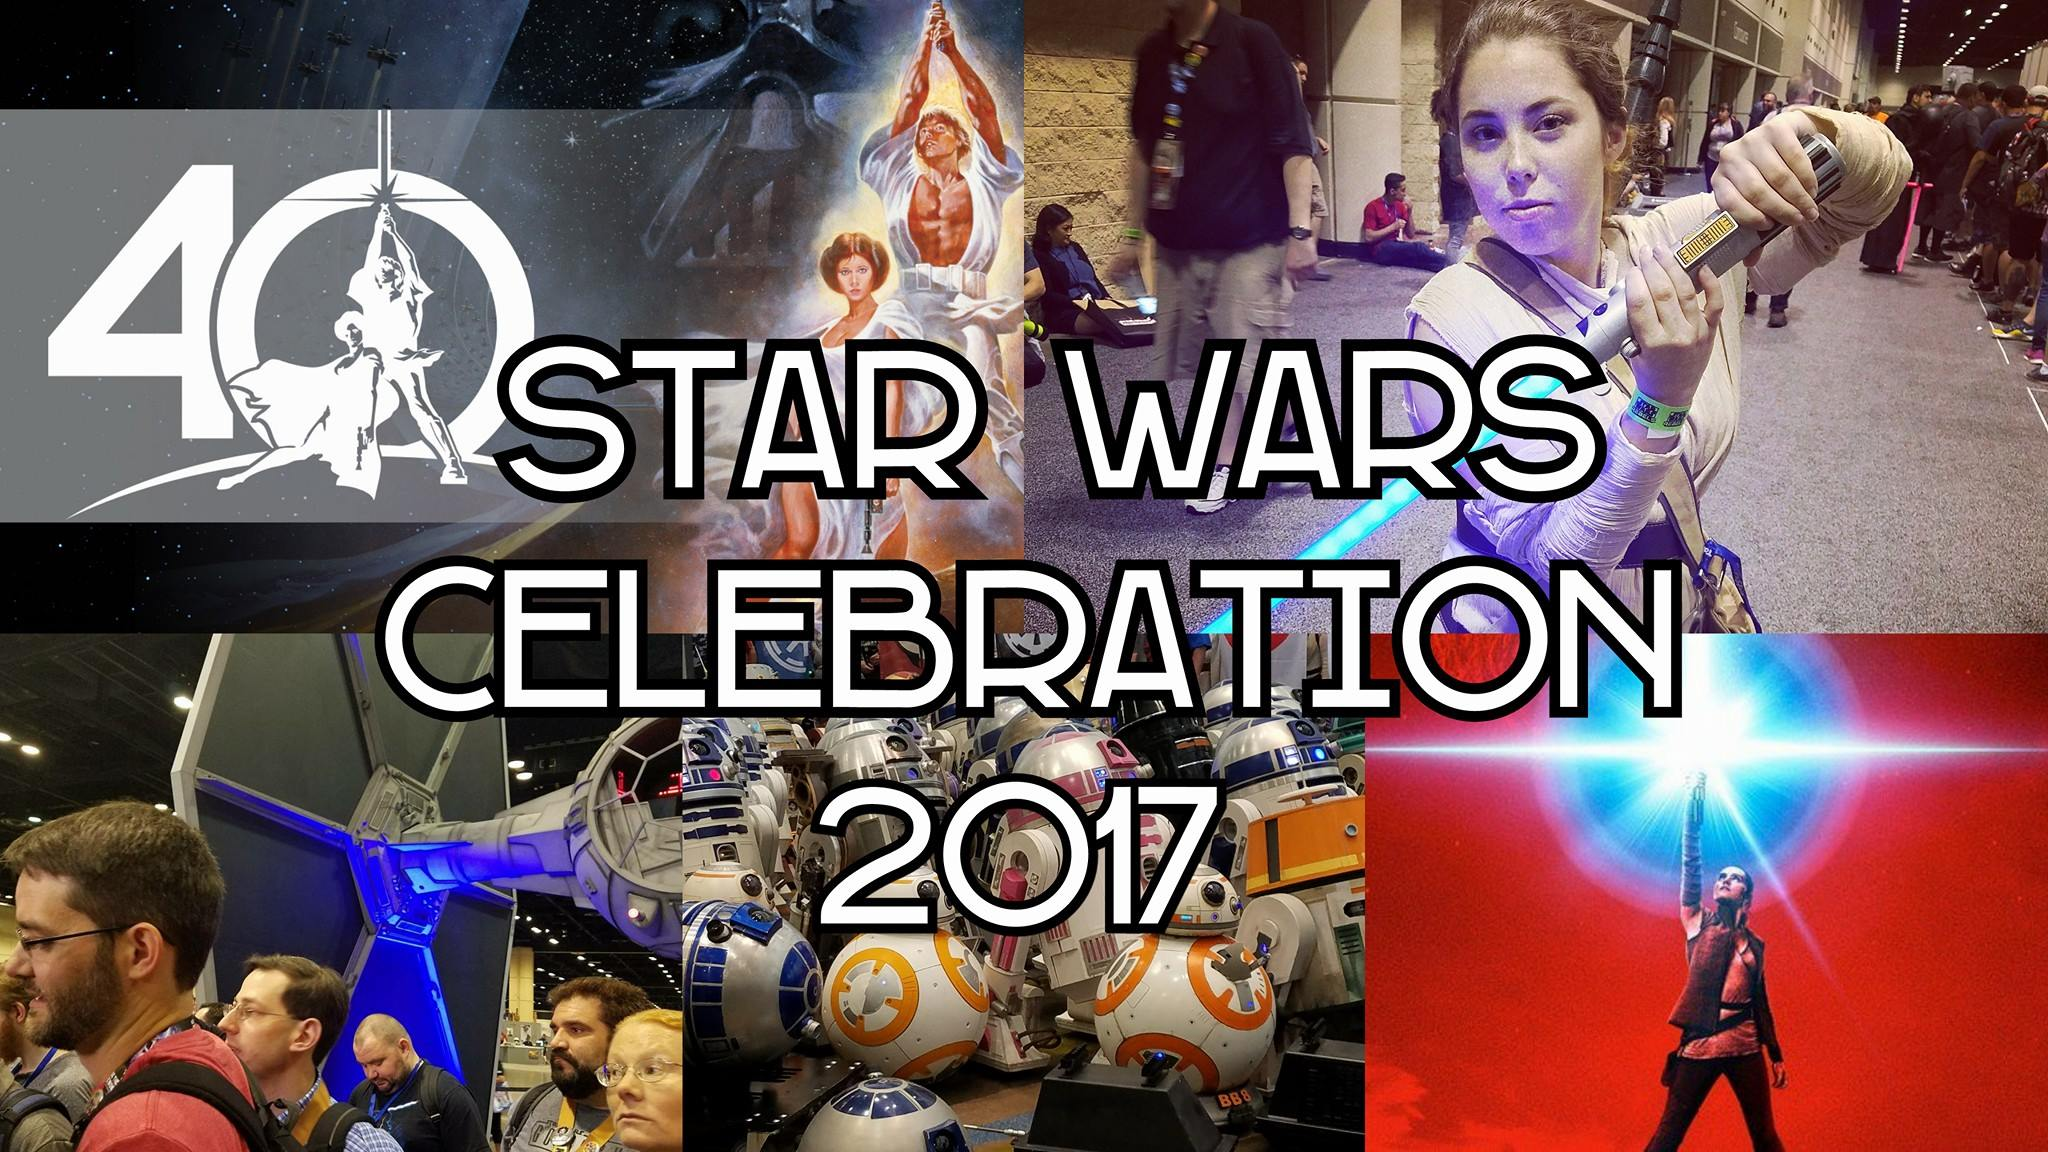 Episode 7: Star Wars Celebration 2017